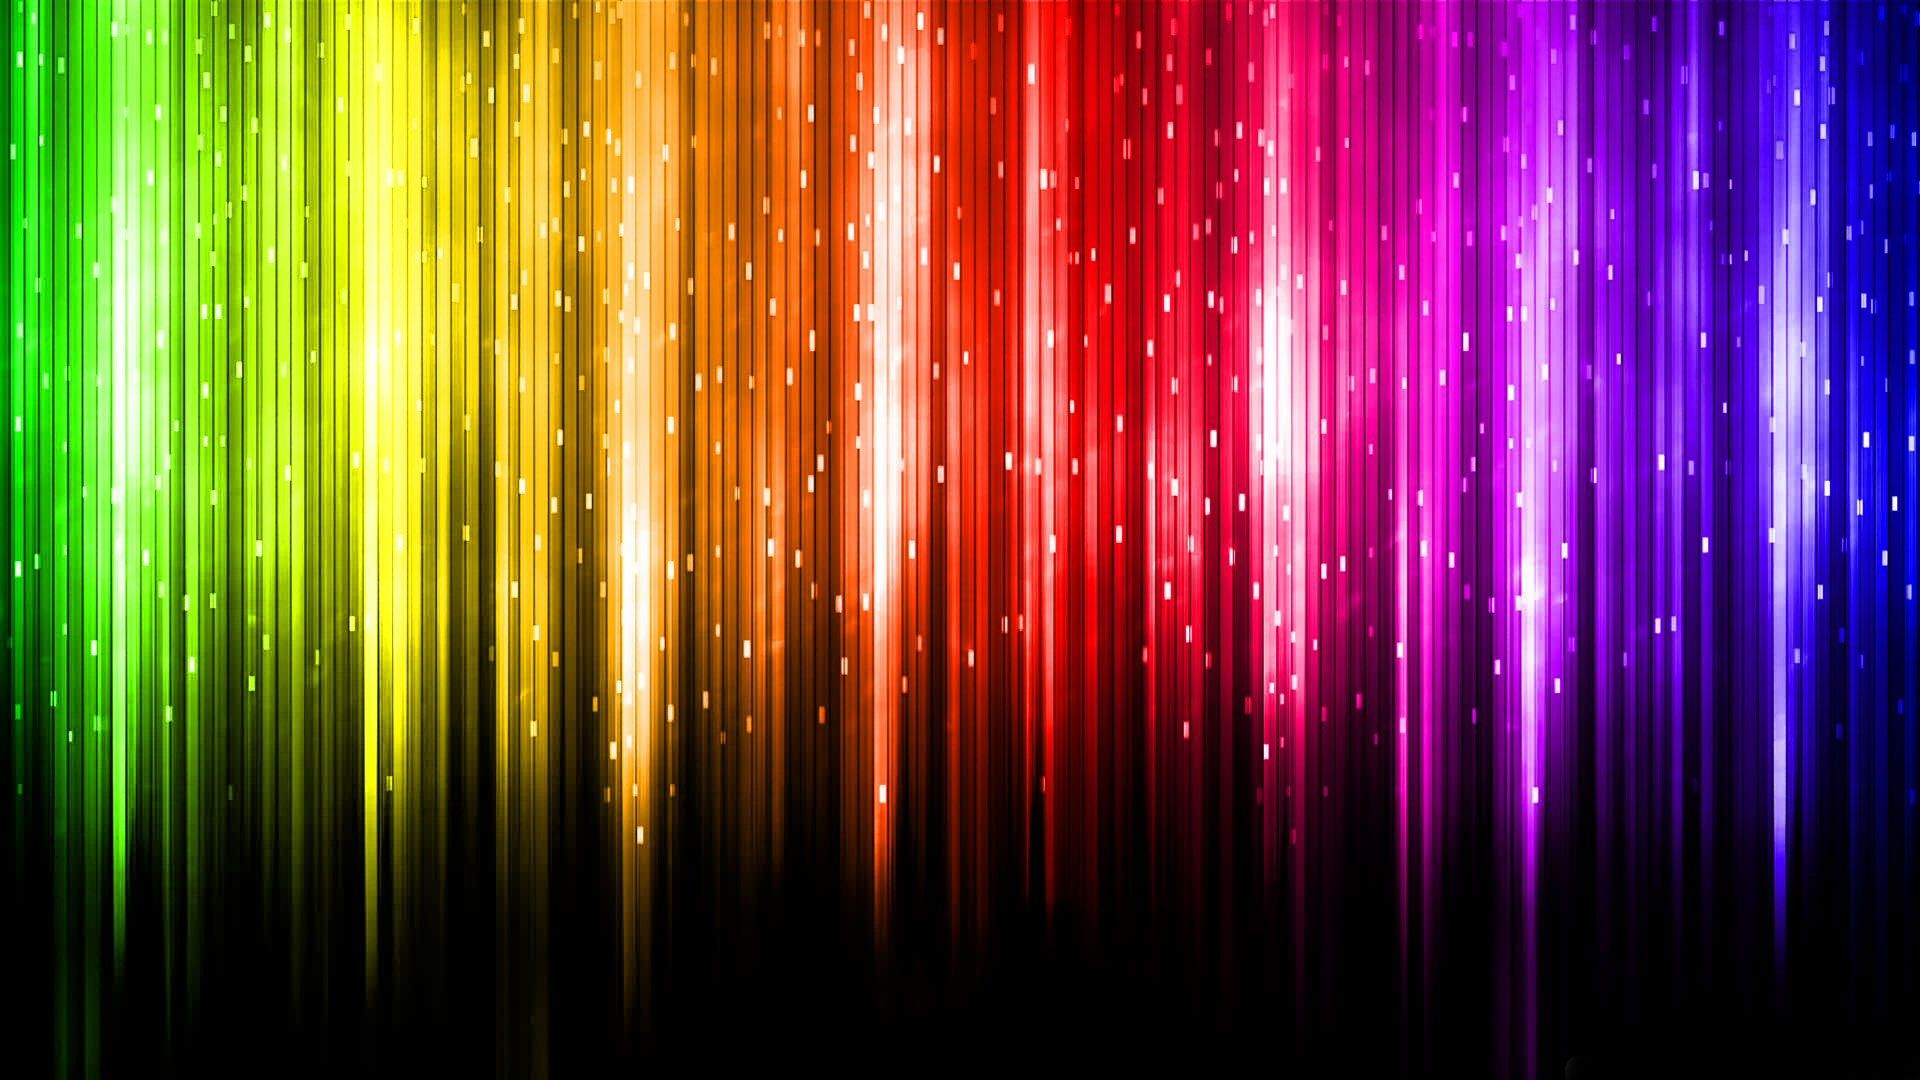 Rainbow Colored Wallpaper - WallpaperSafari